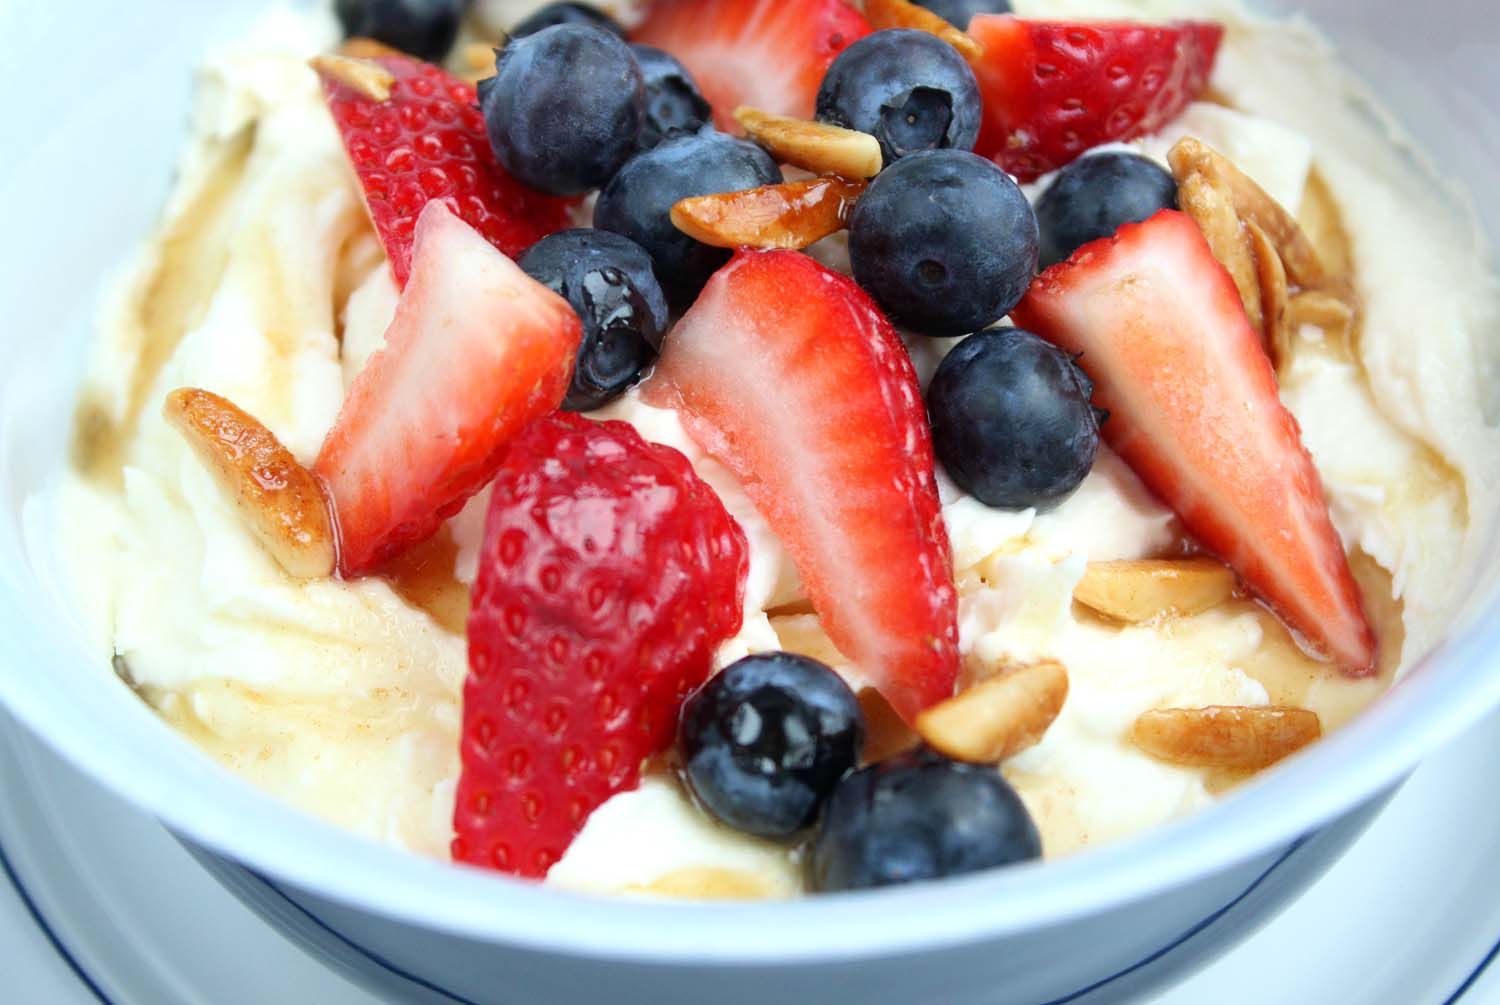 Breakfast Ricotta with Berries & Maple Syrup   | Image:   Laura Messersmith